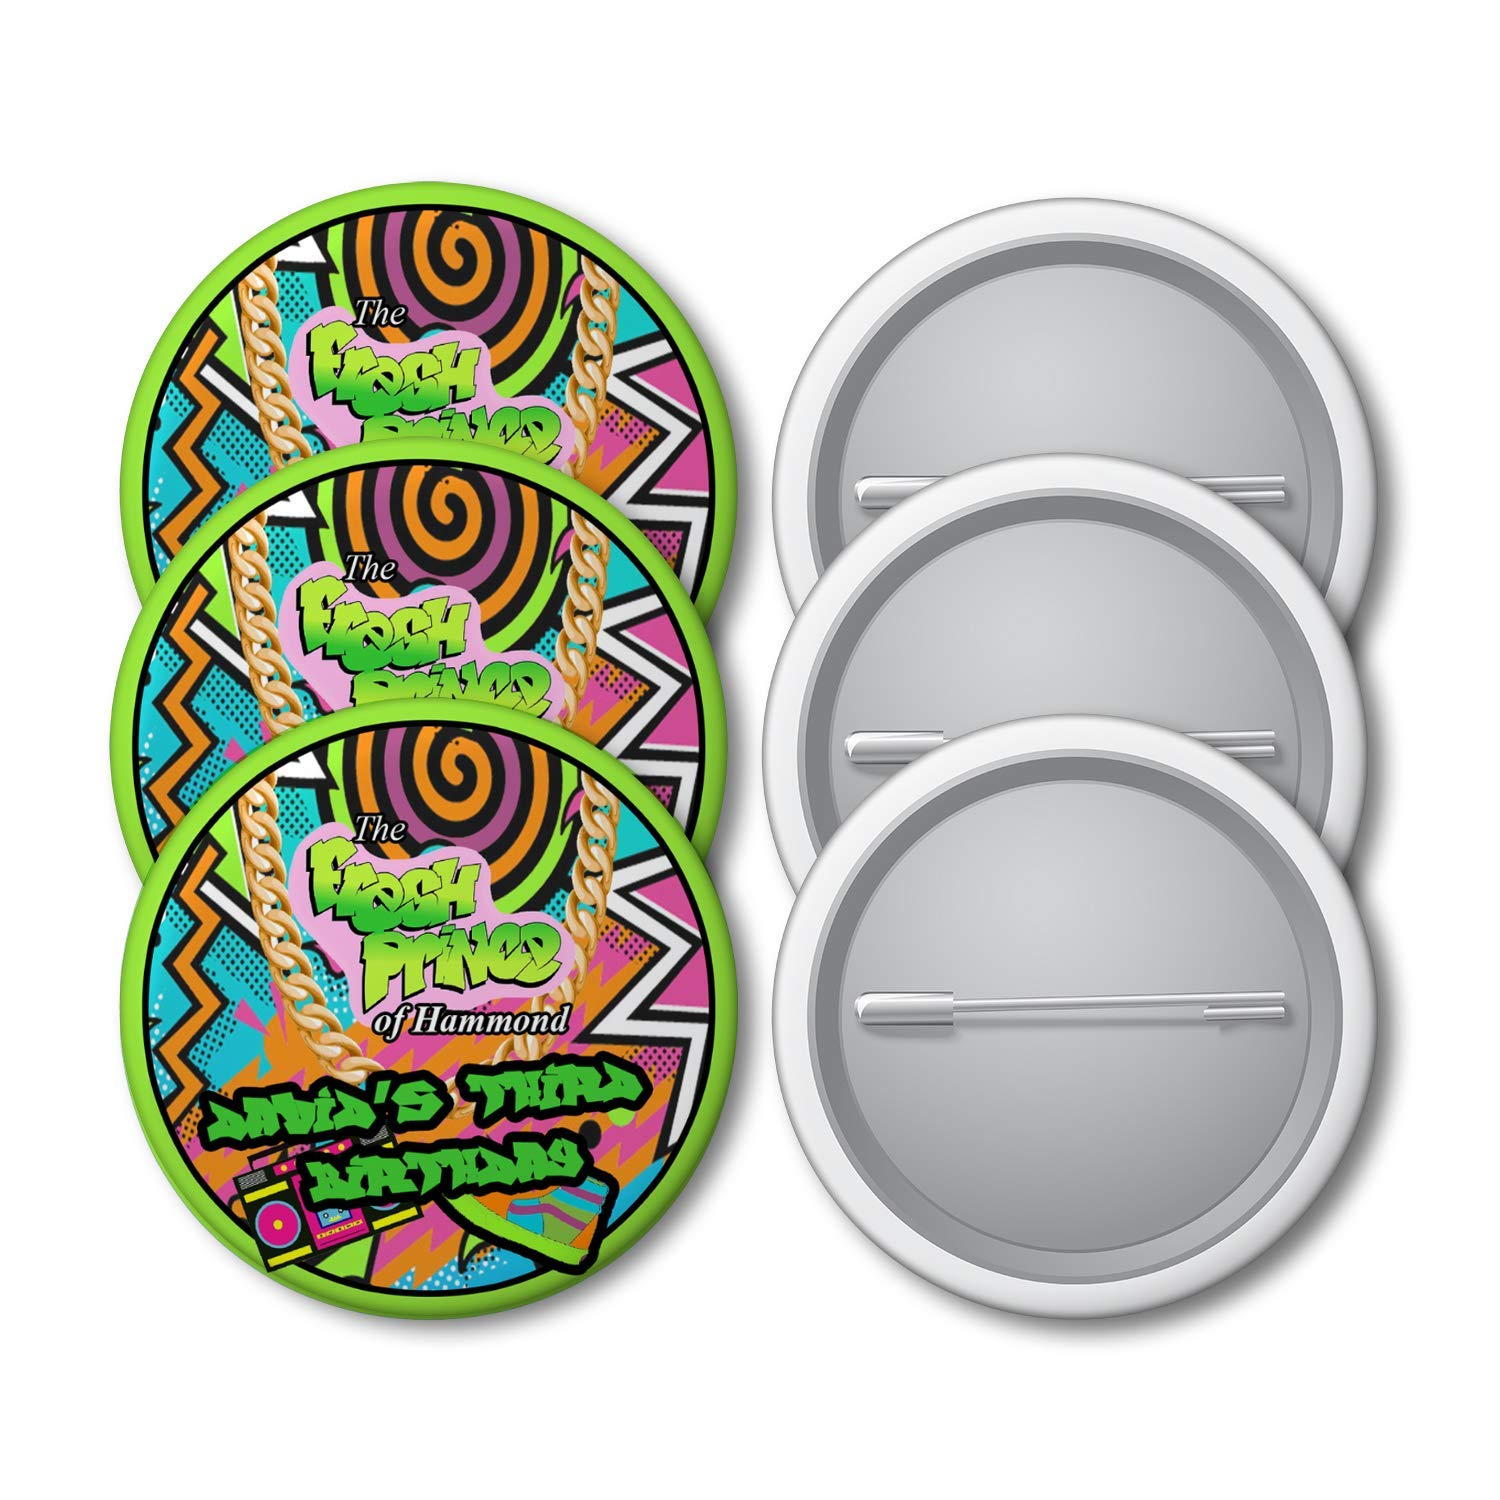 12 Personalized Fresh Prince of Bel Air Button Pins Fresh Prince Birthday Party Pins Pushback Pins 2.25 inches Fresh Prince Party Supplies Fresh Prince Party Favors Plastic Button Pins